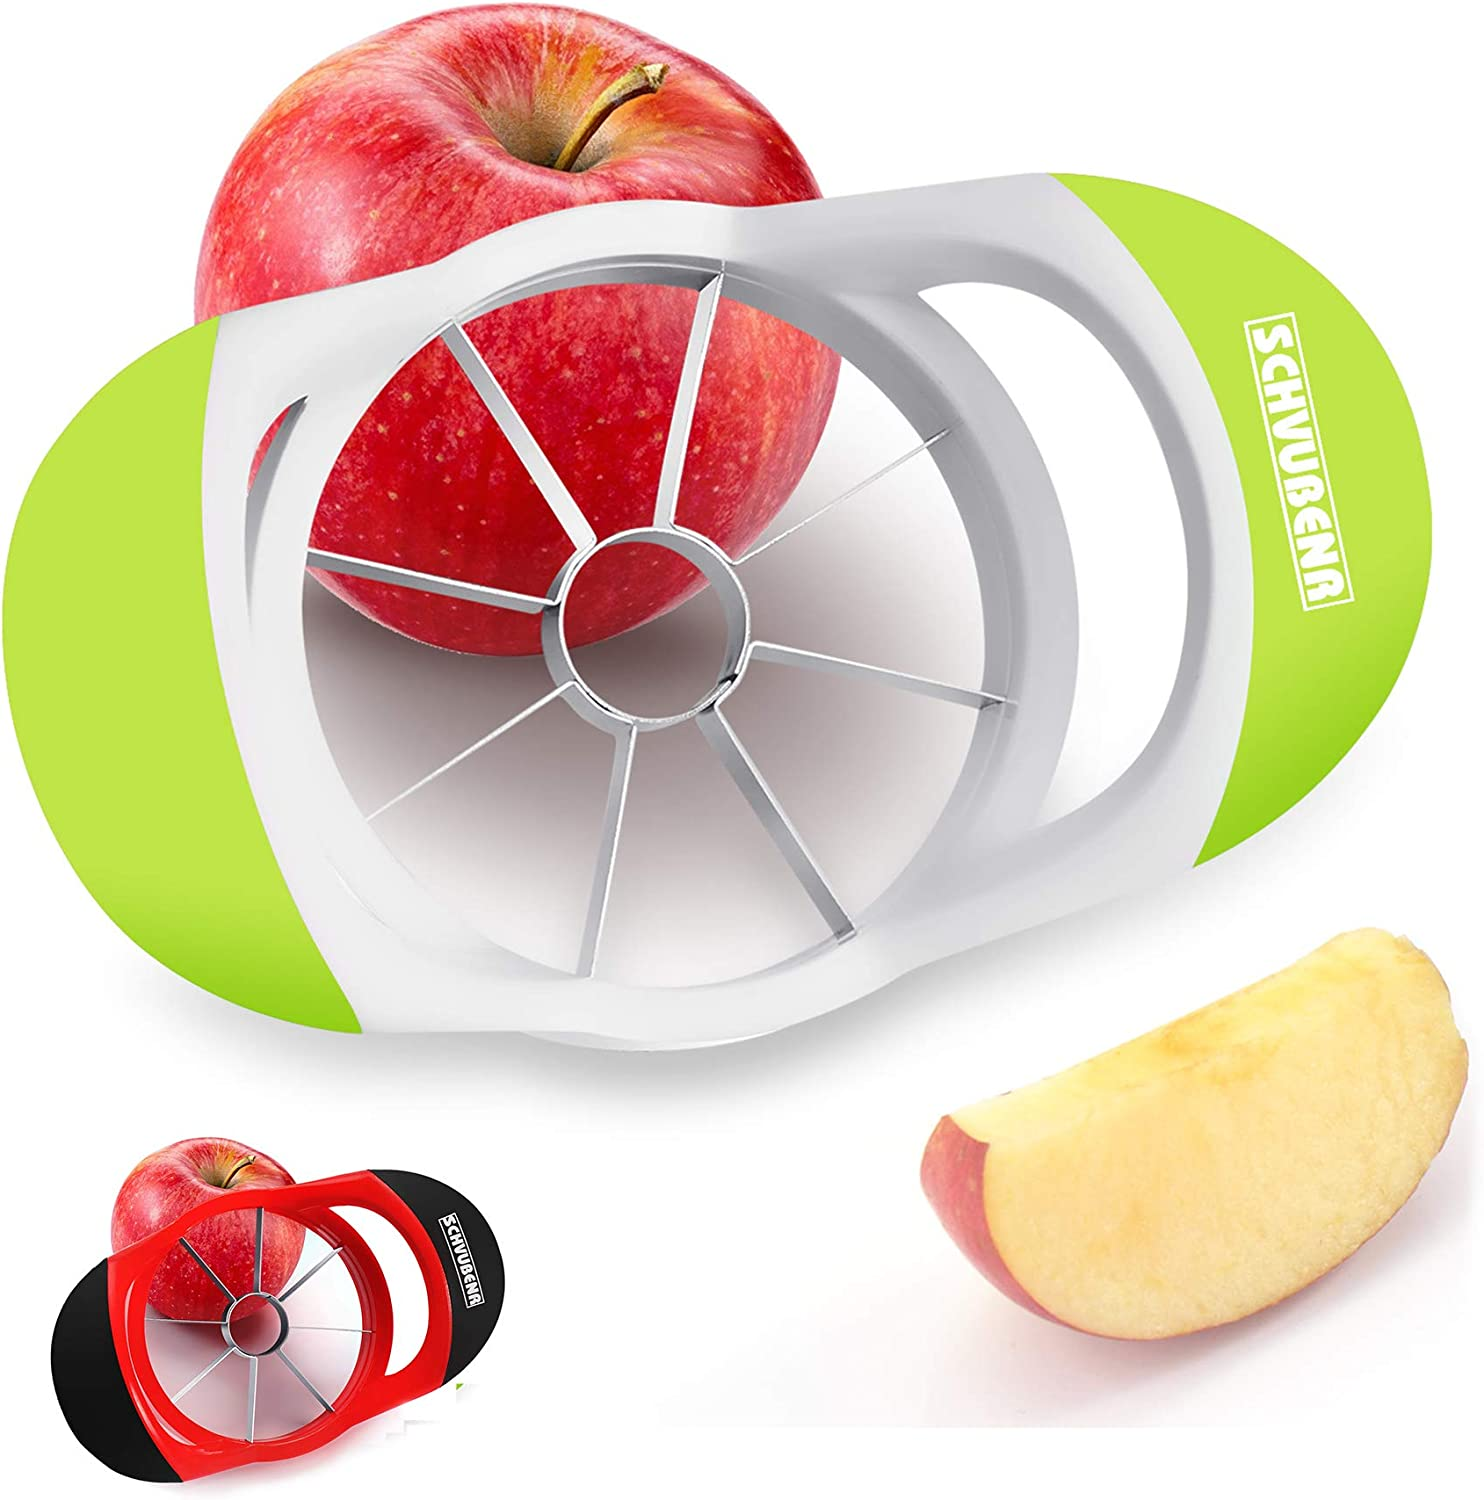 SCHVUBENR 3.5 Inch Apple Slicer - Professional Apple Cutter - Stainless Steel Apple Corer - Super Sharp Apple Slicer and Corer - Apple Corer Tool with 8 Sharp Blades(Green)